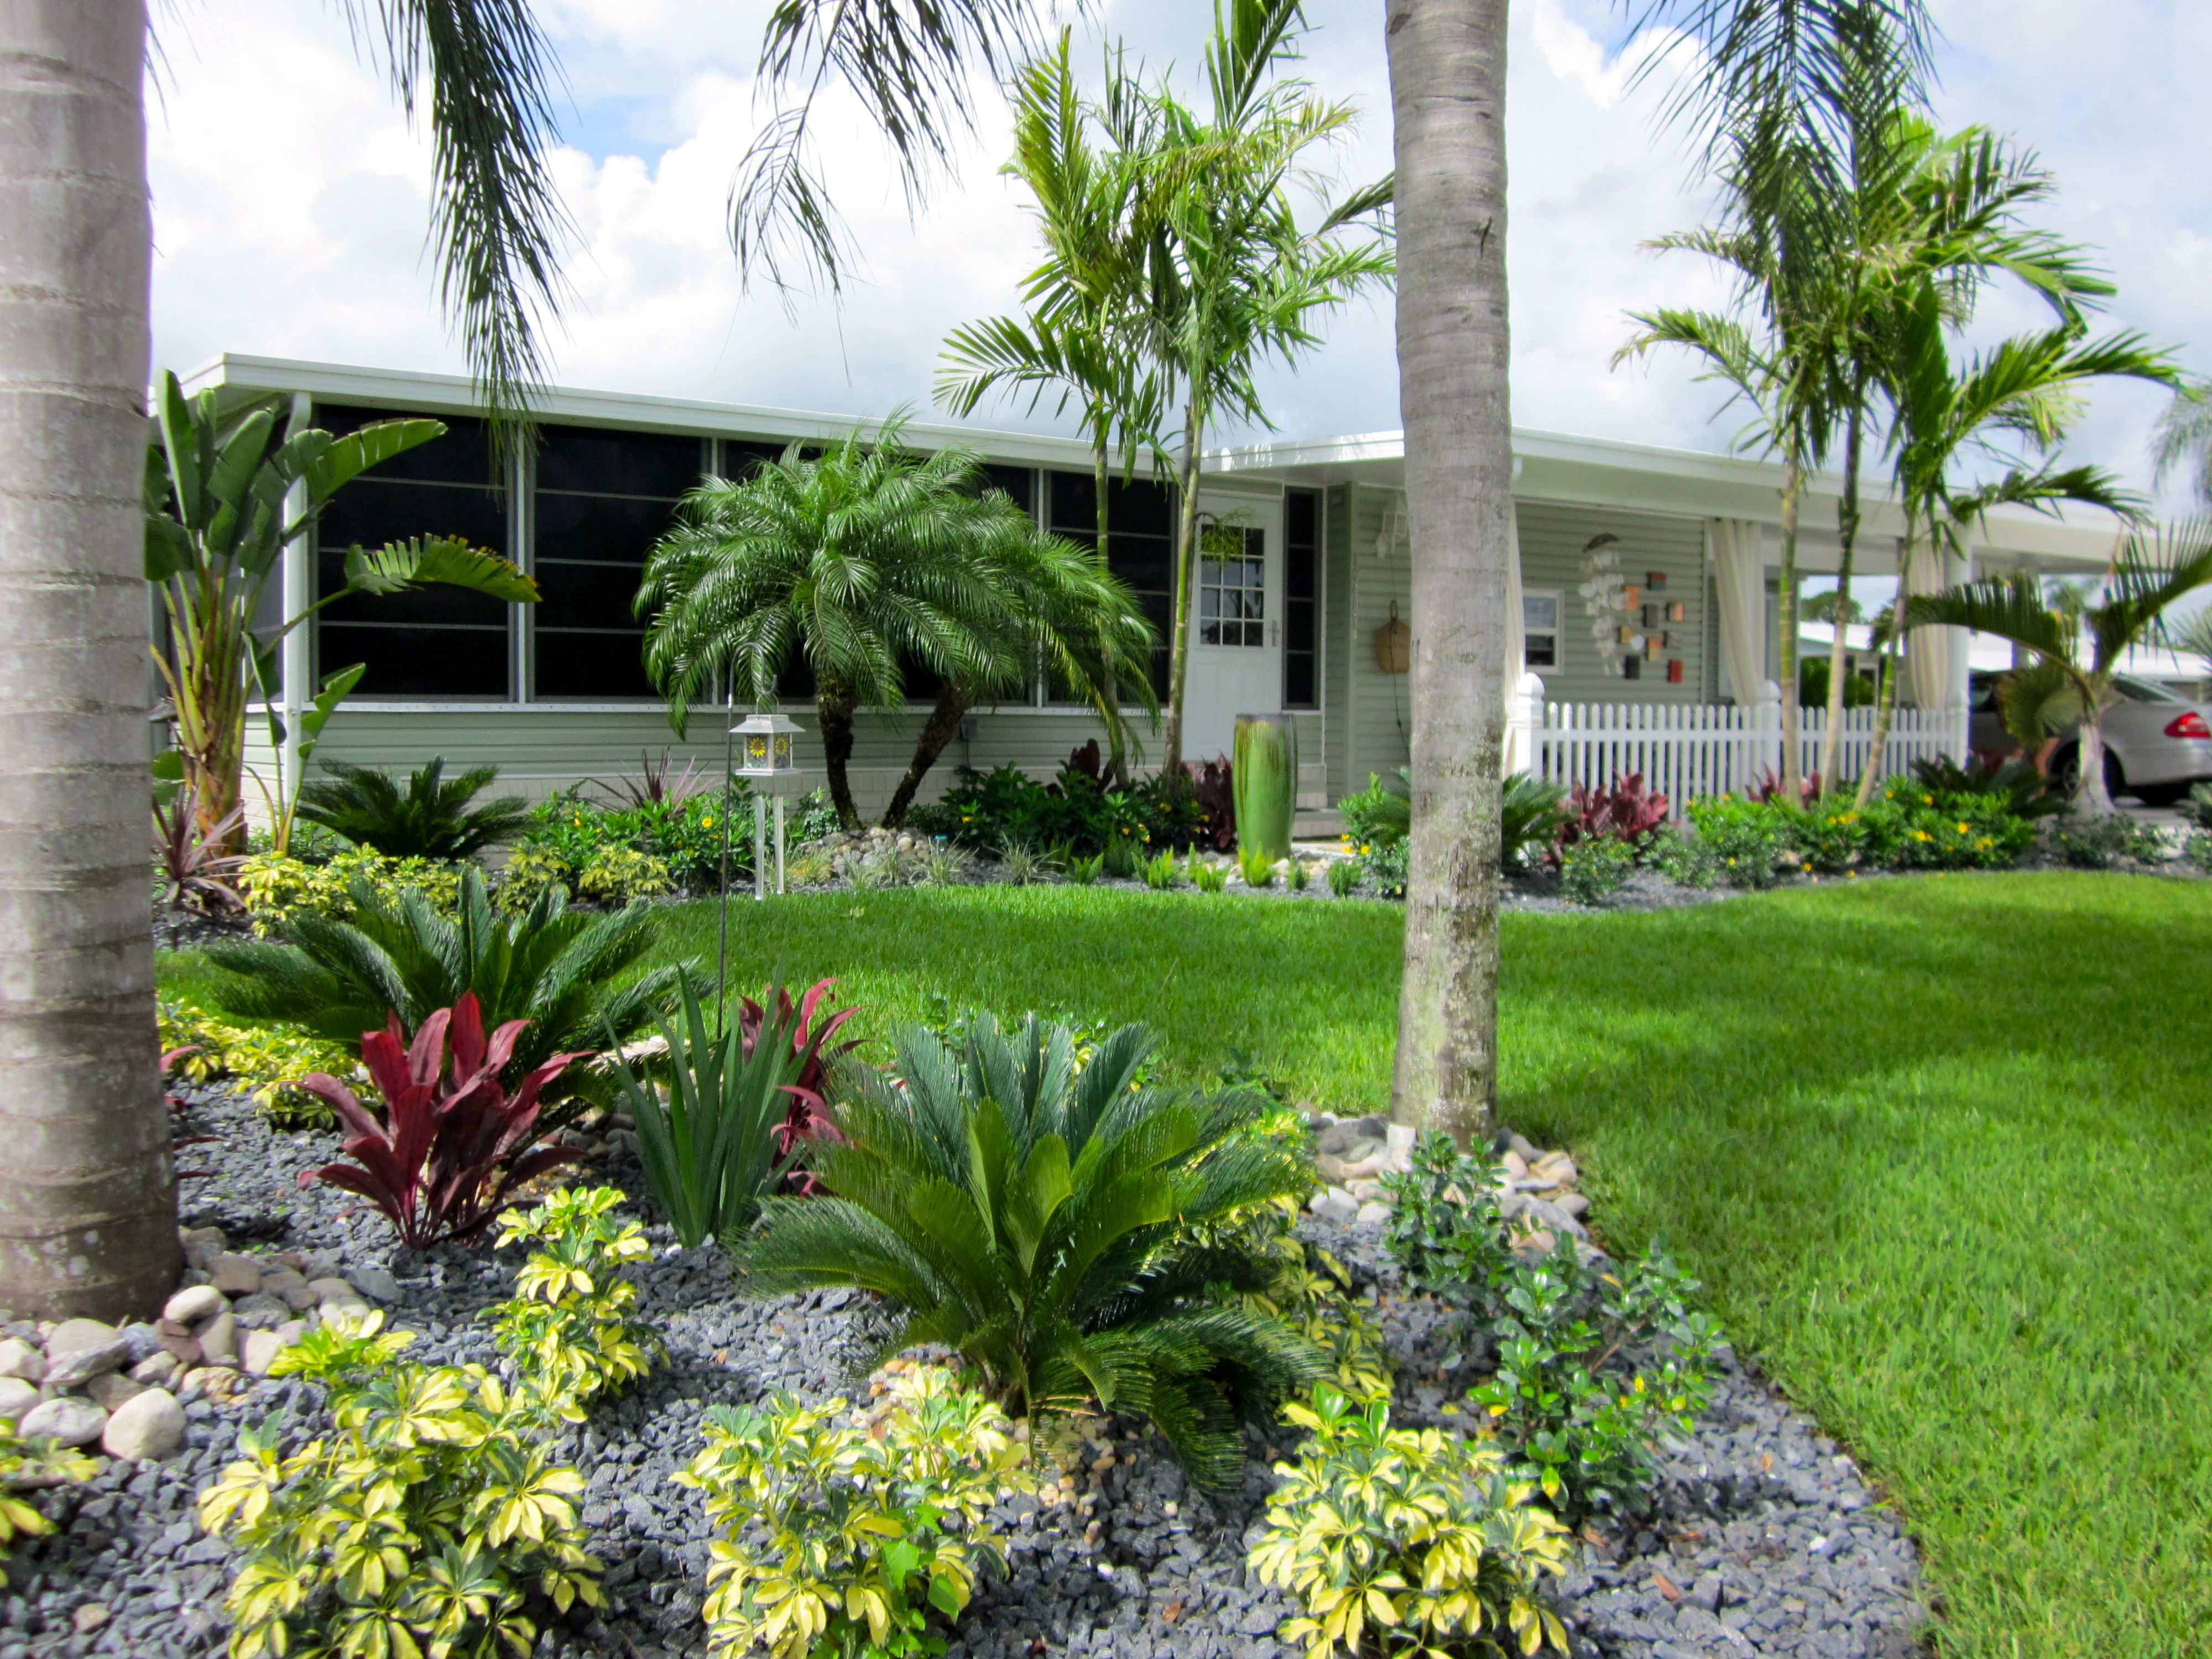 Ideas florida landscapes garden design ideas curb appeal Florida landscape design ideas